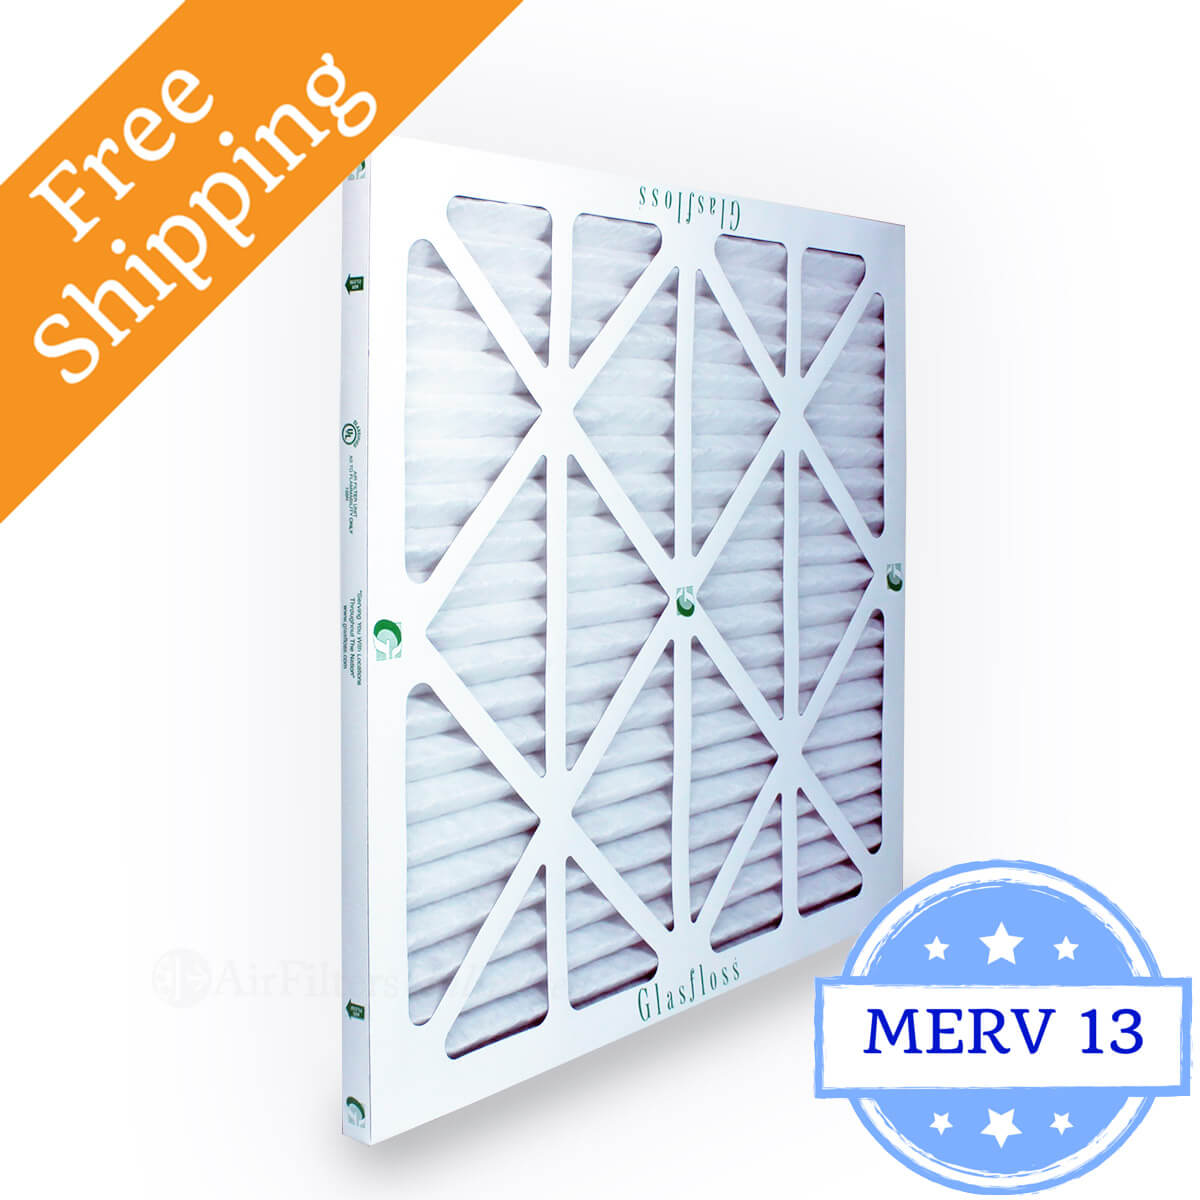 Glasfloss 24x24x1 Air Filter MR-13 Series